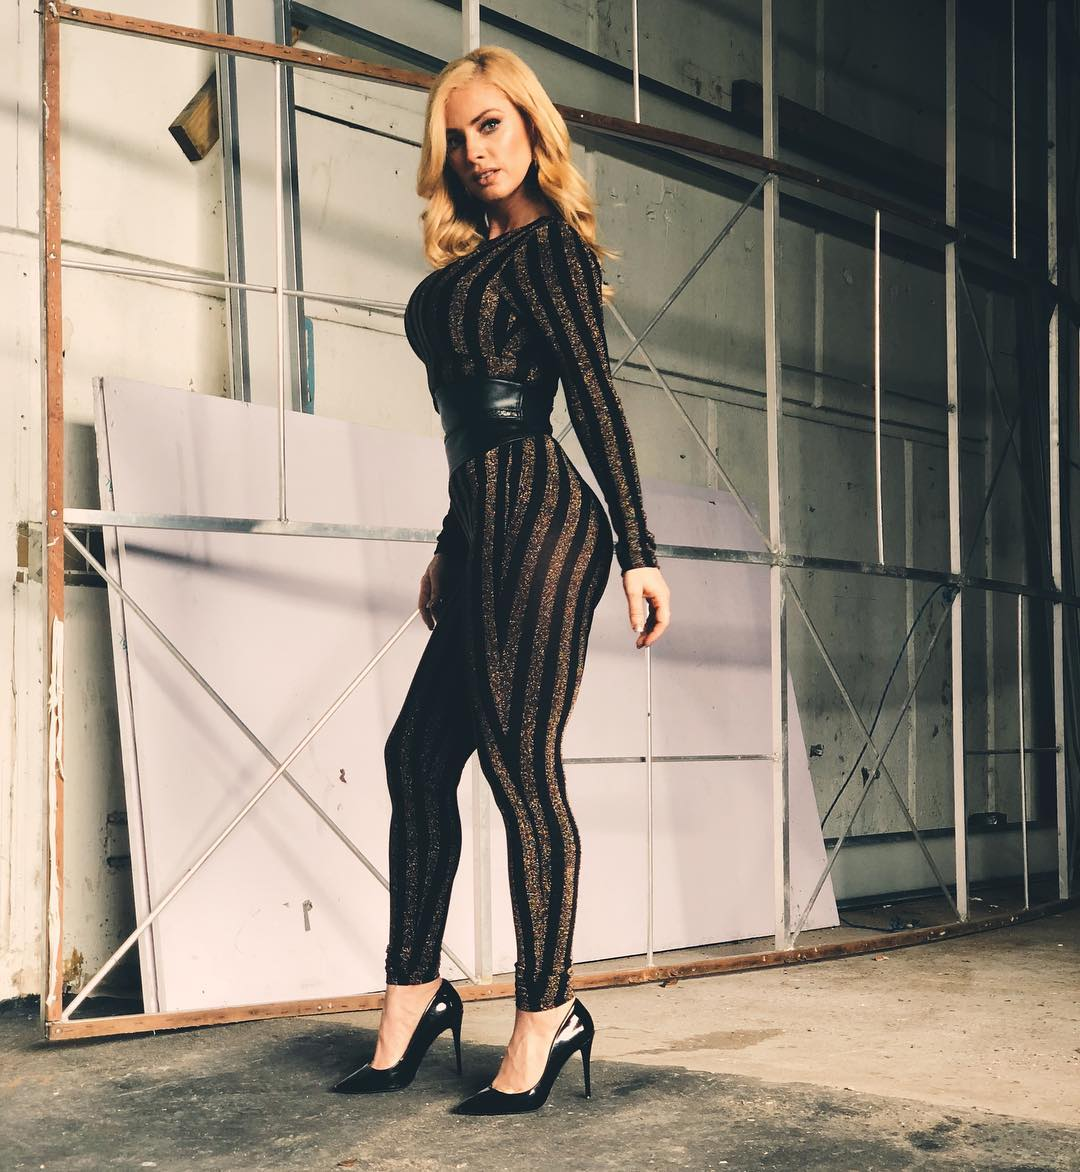 OOTD: Natalia Rivera In Striped Tight Jumpsuit 2019